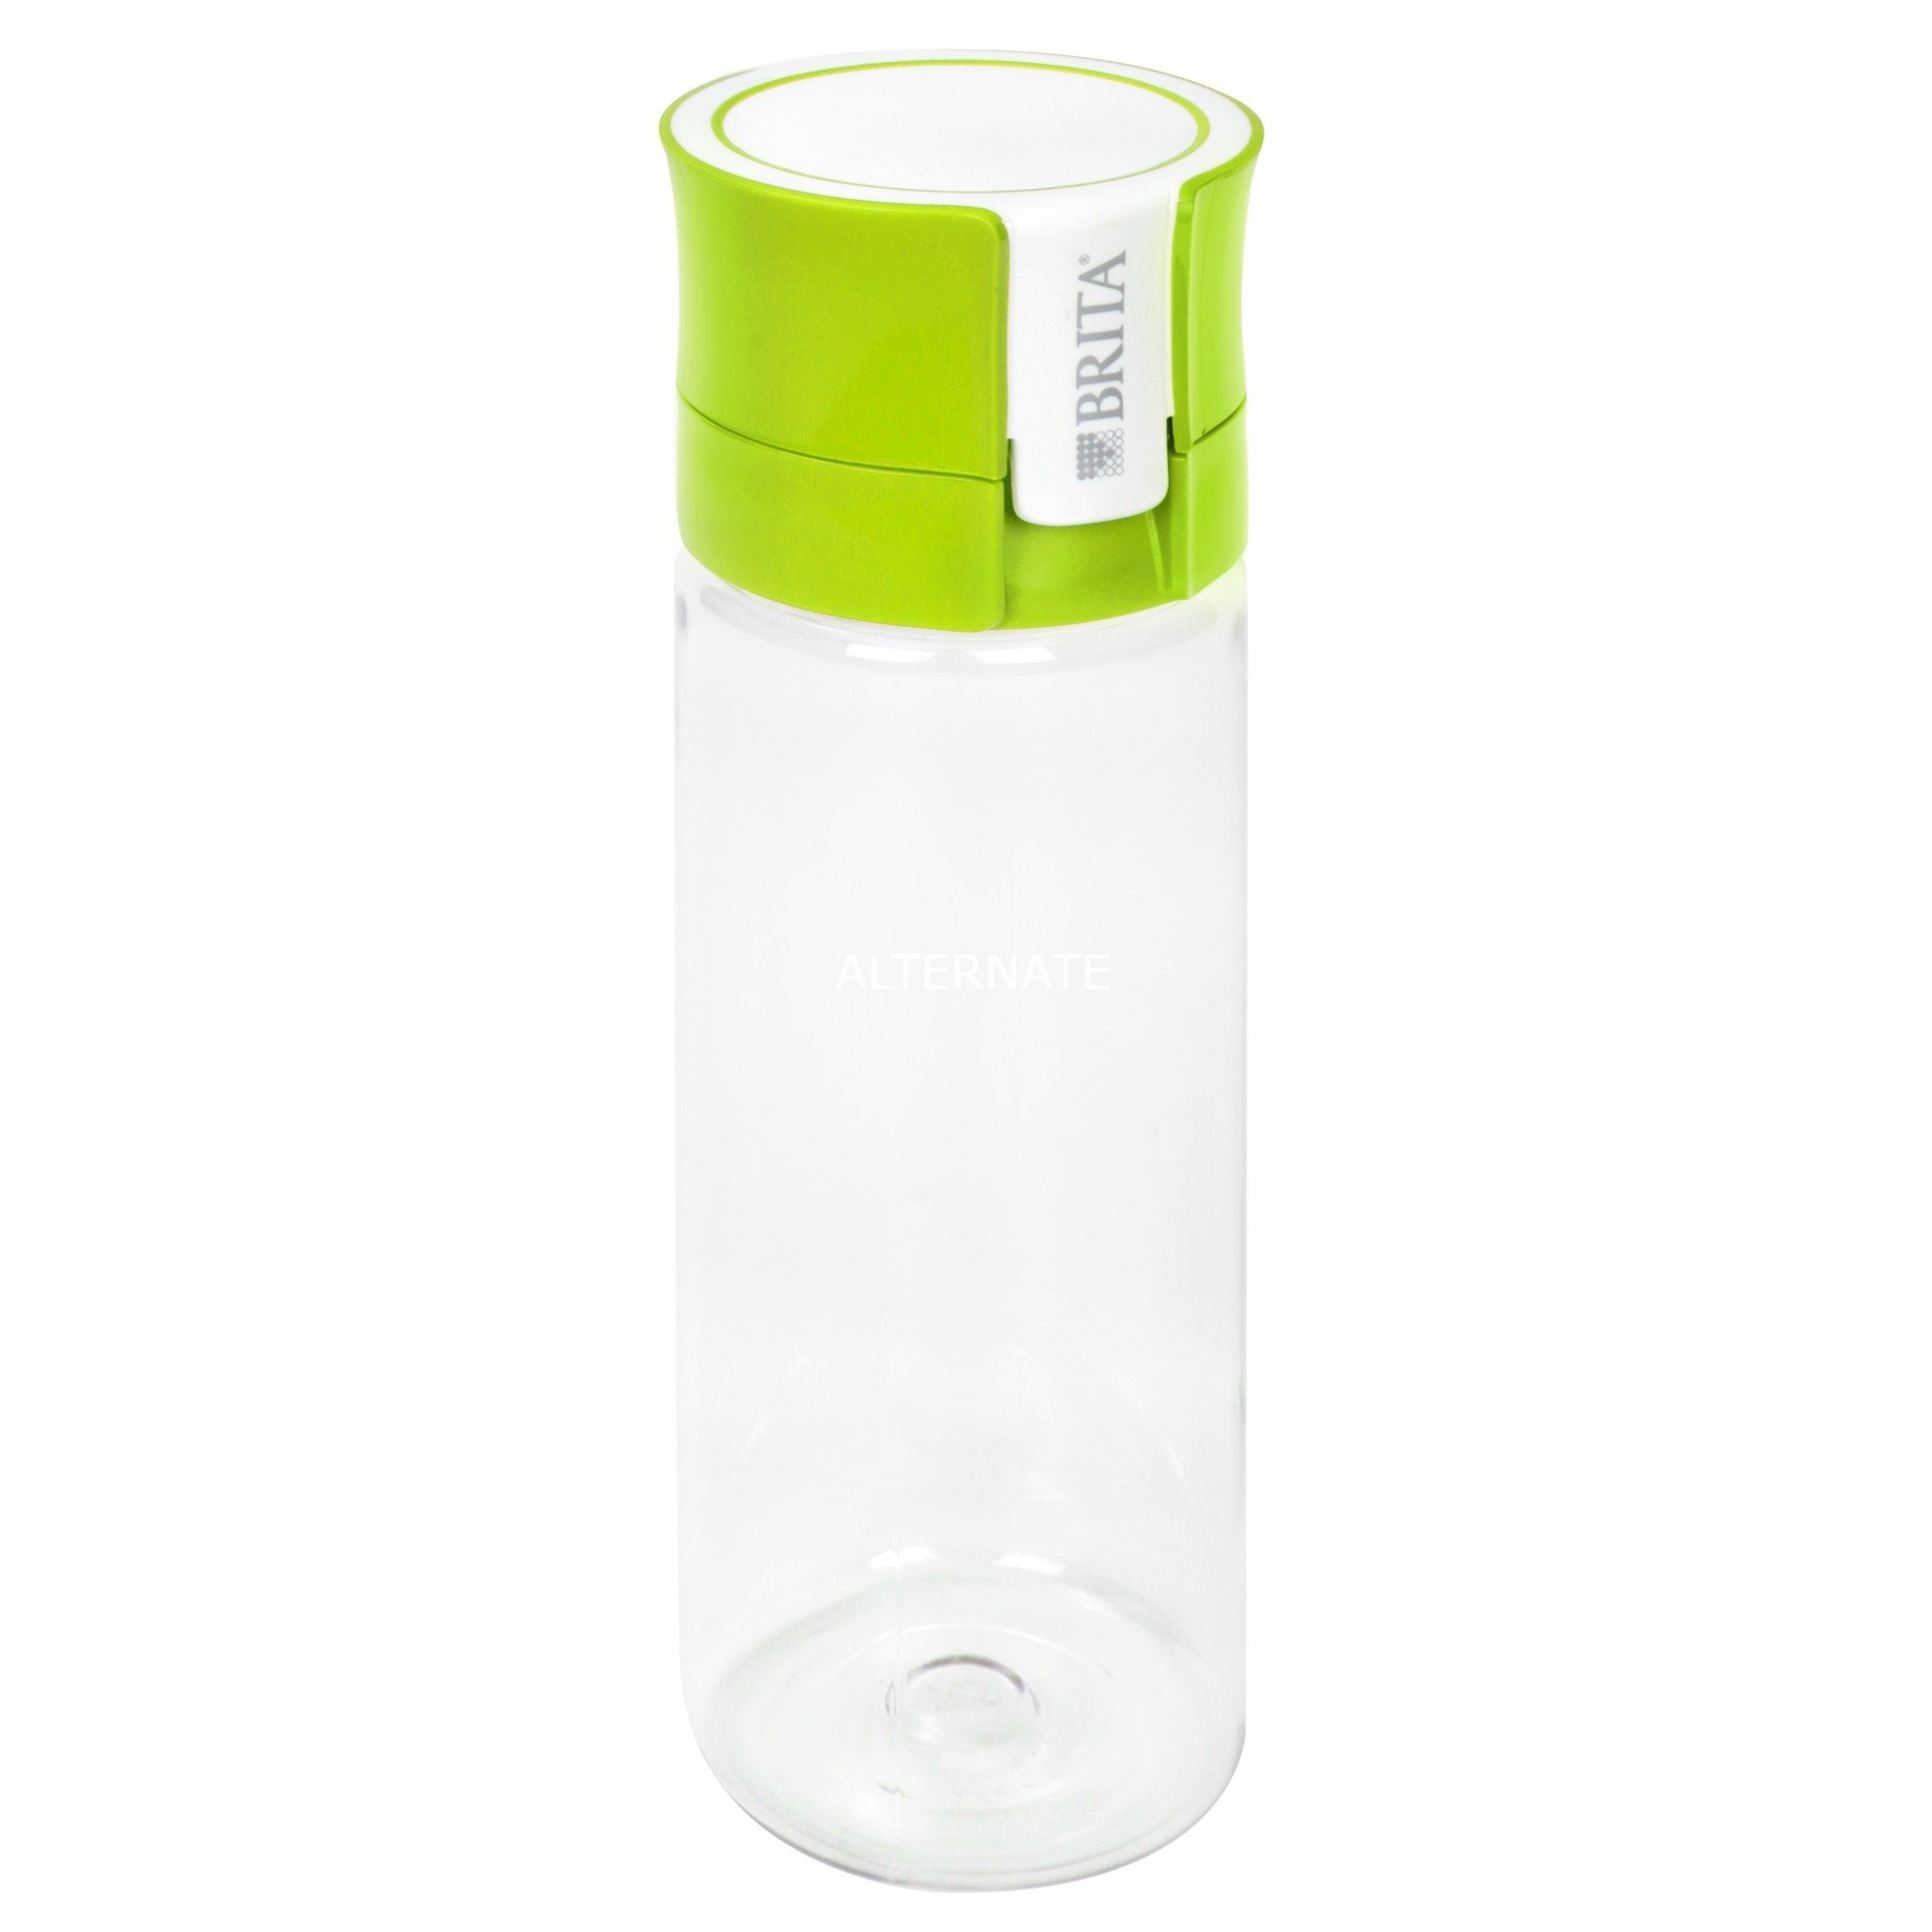 Fill&Go Bottle Filtr Lime Botella con filtro de agua Cal, Transparente